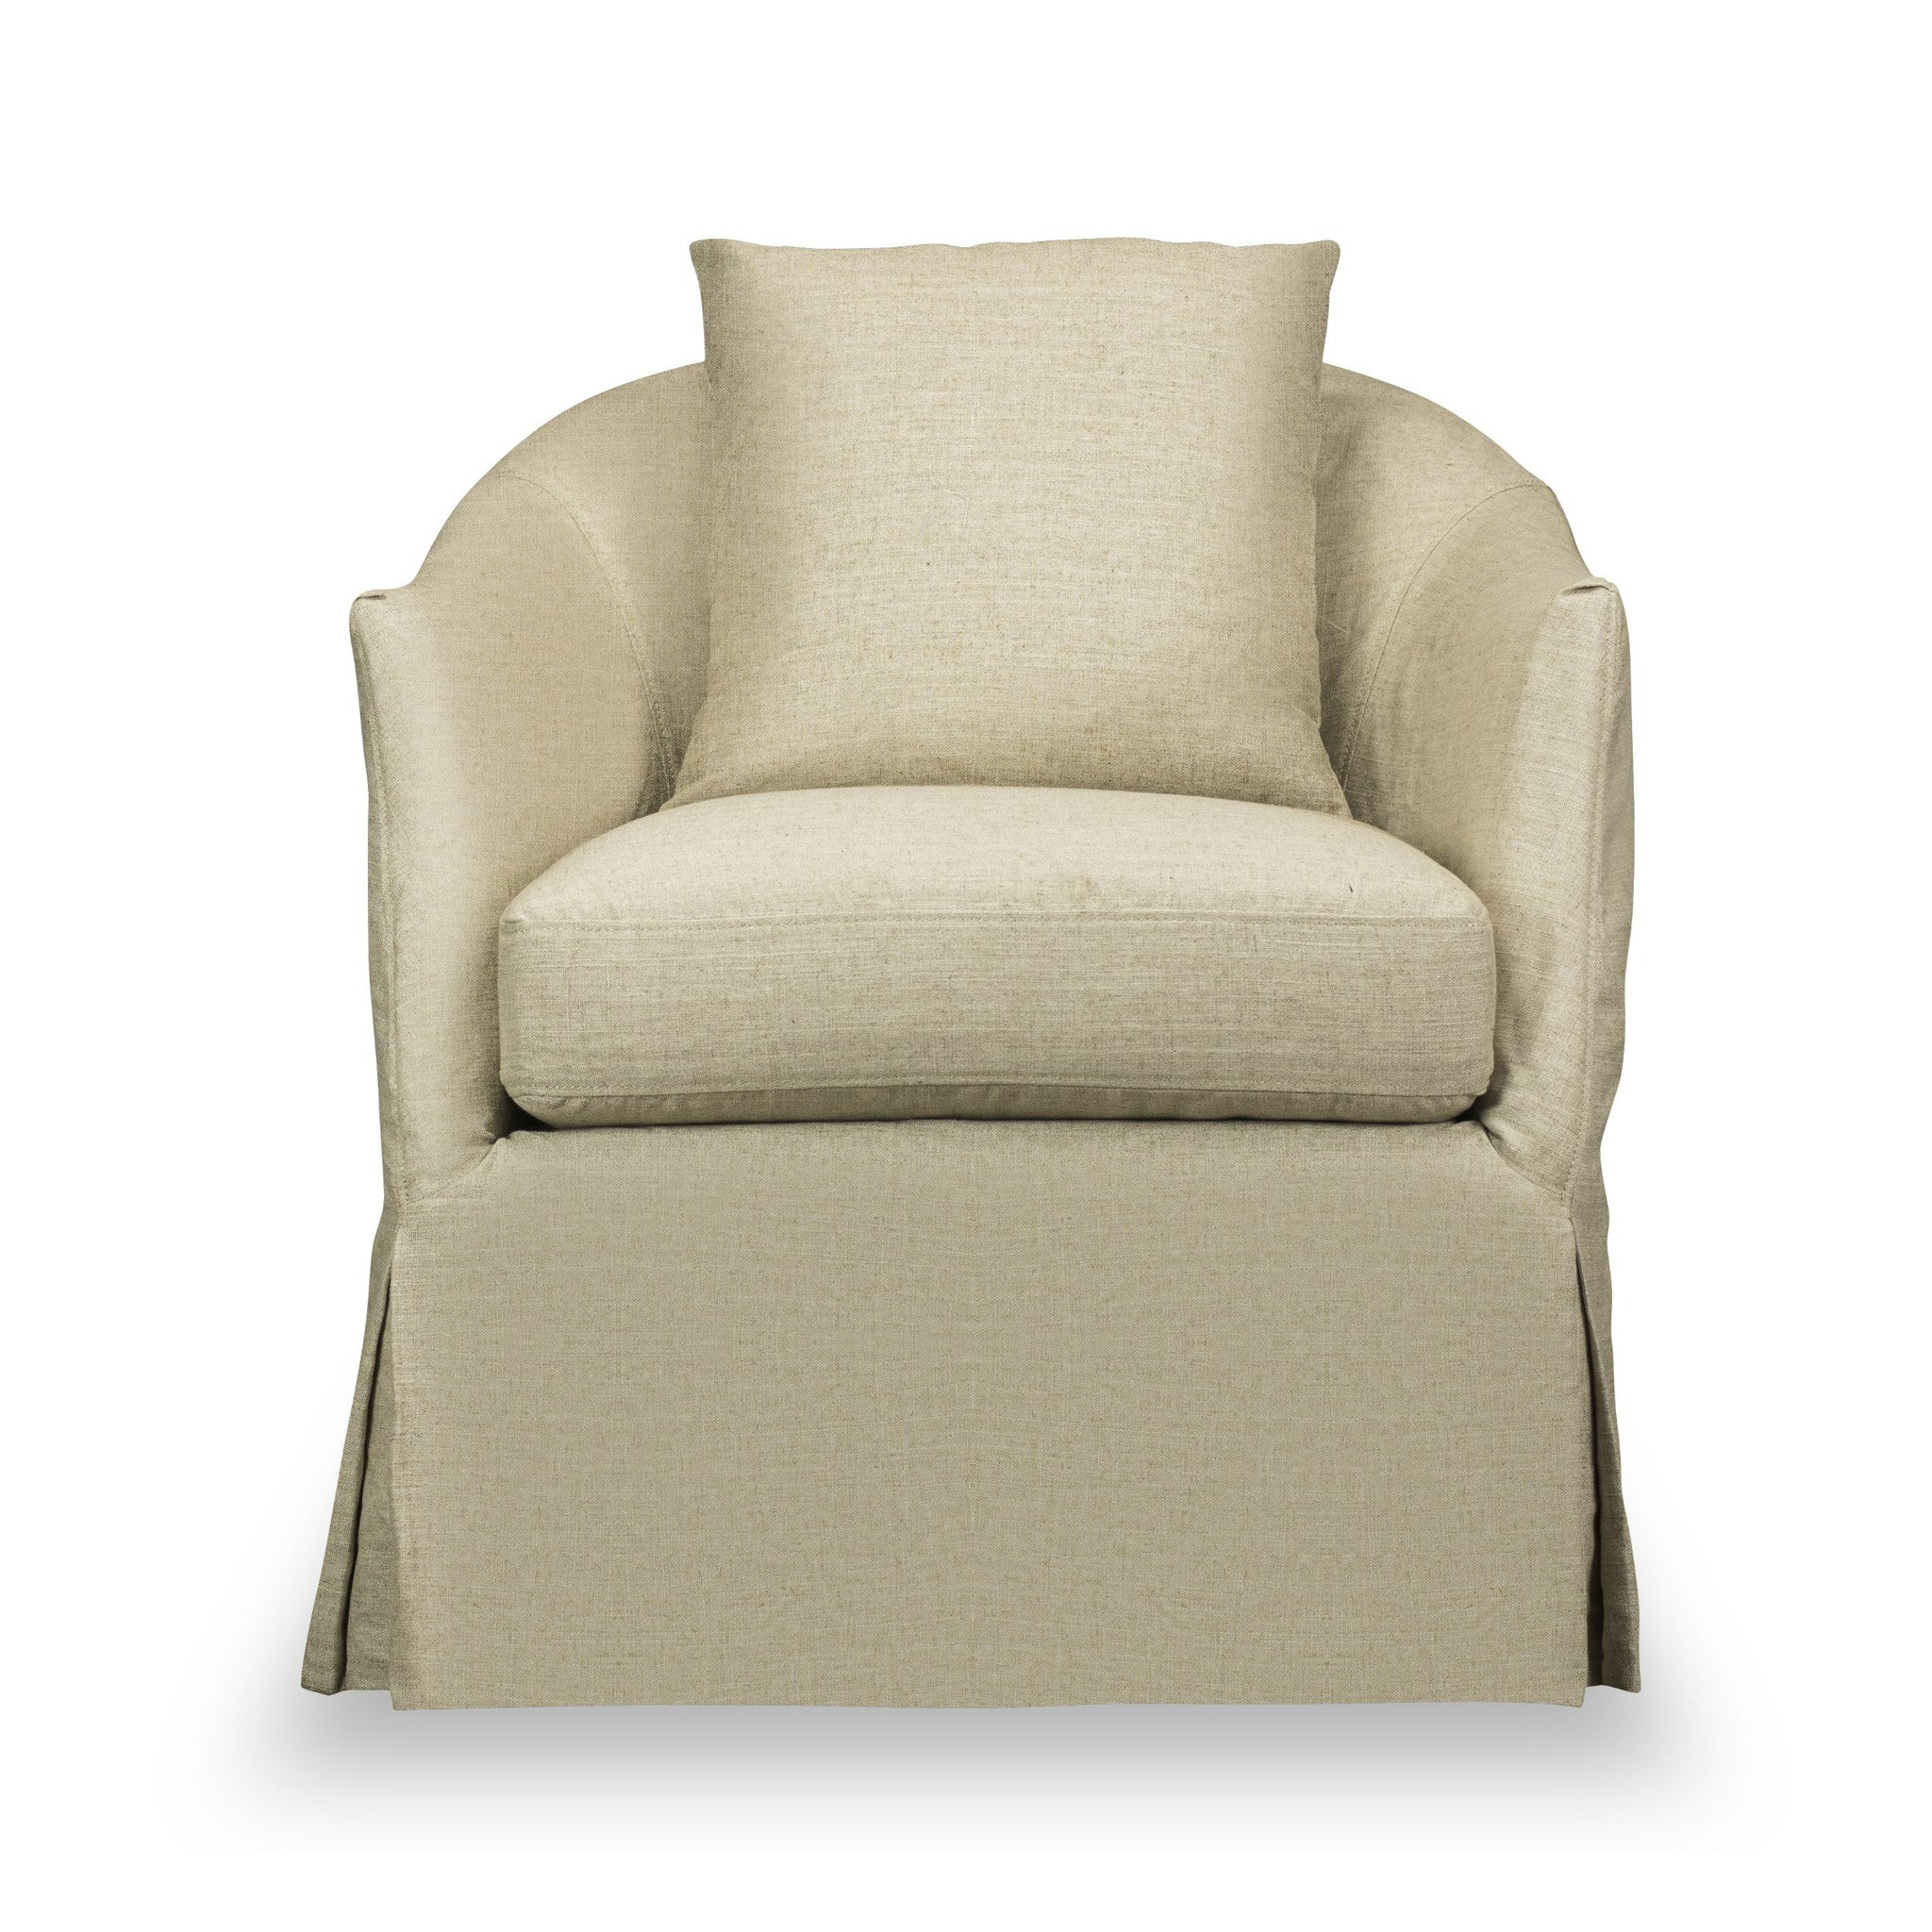 ... Amy Slip Covered Swivel Chair In Linen | Shopcomfortclub ...